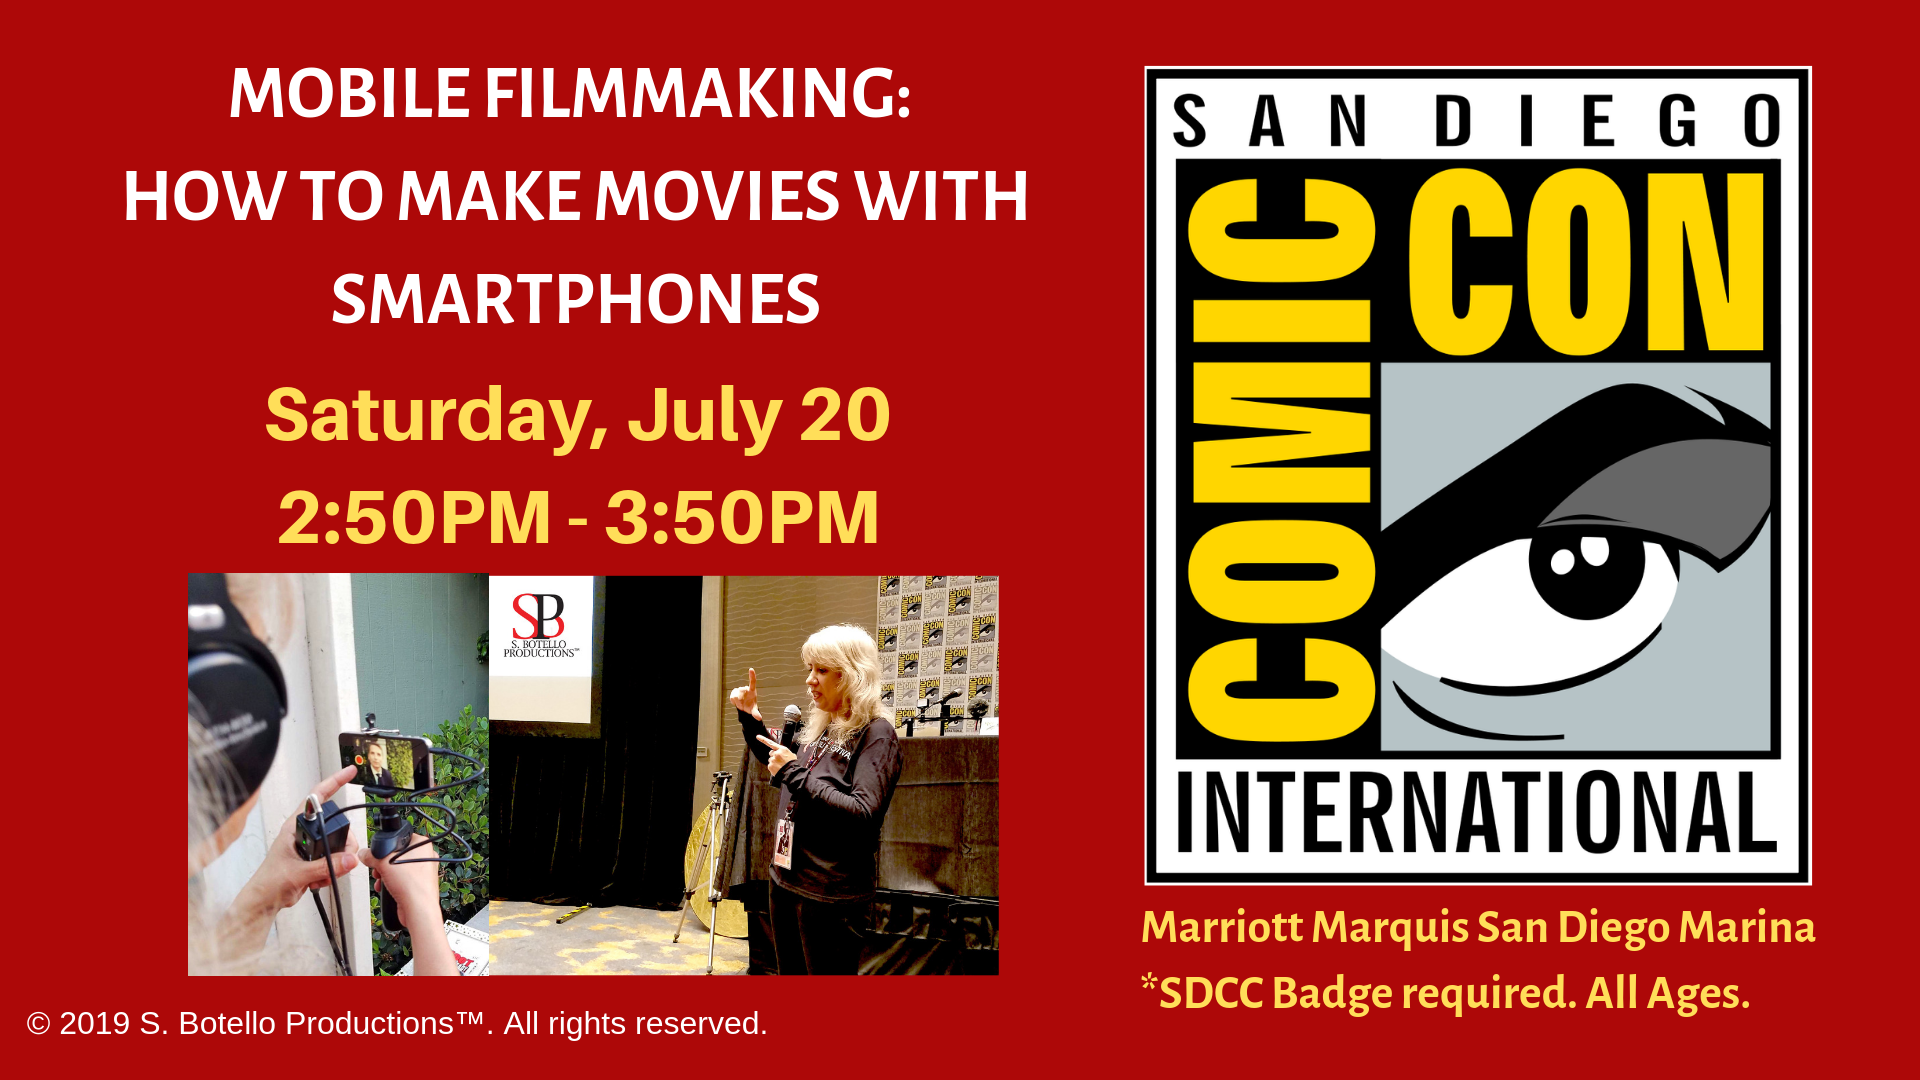 SDCC 2019 Mobile Filmmaking Panel date and time